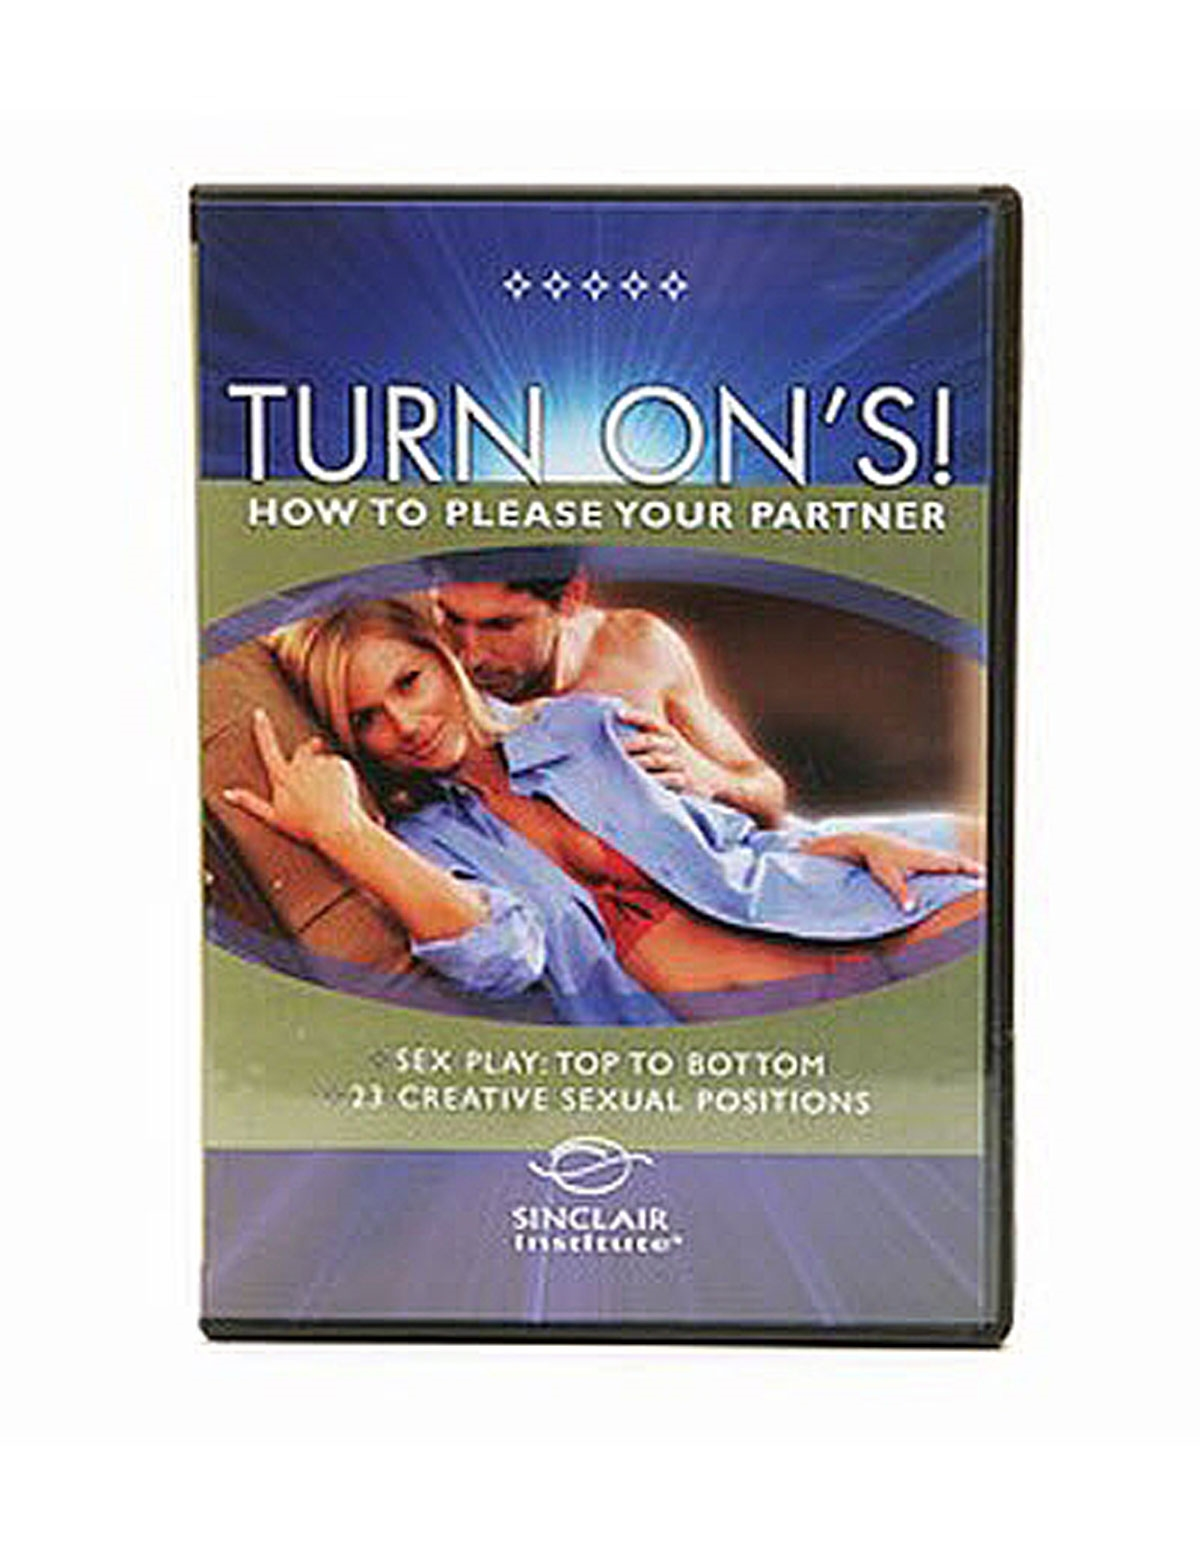 Turn Ons Vol 1 Dvd